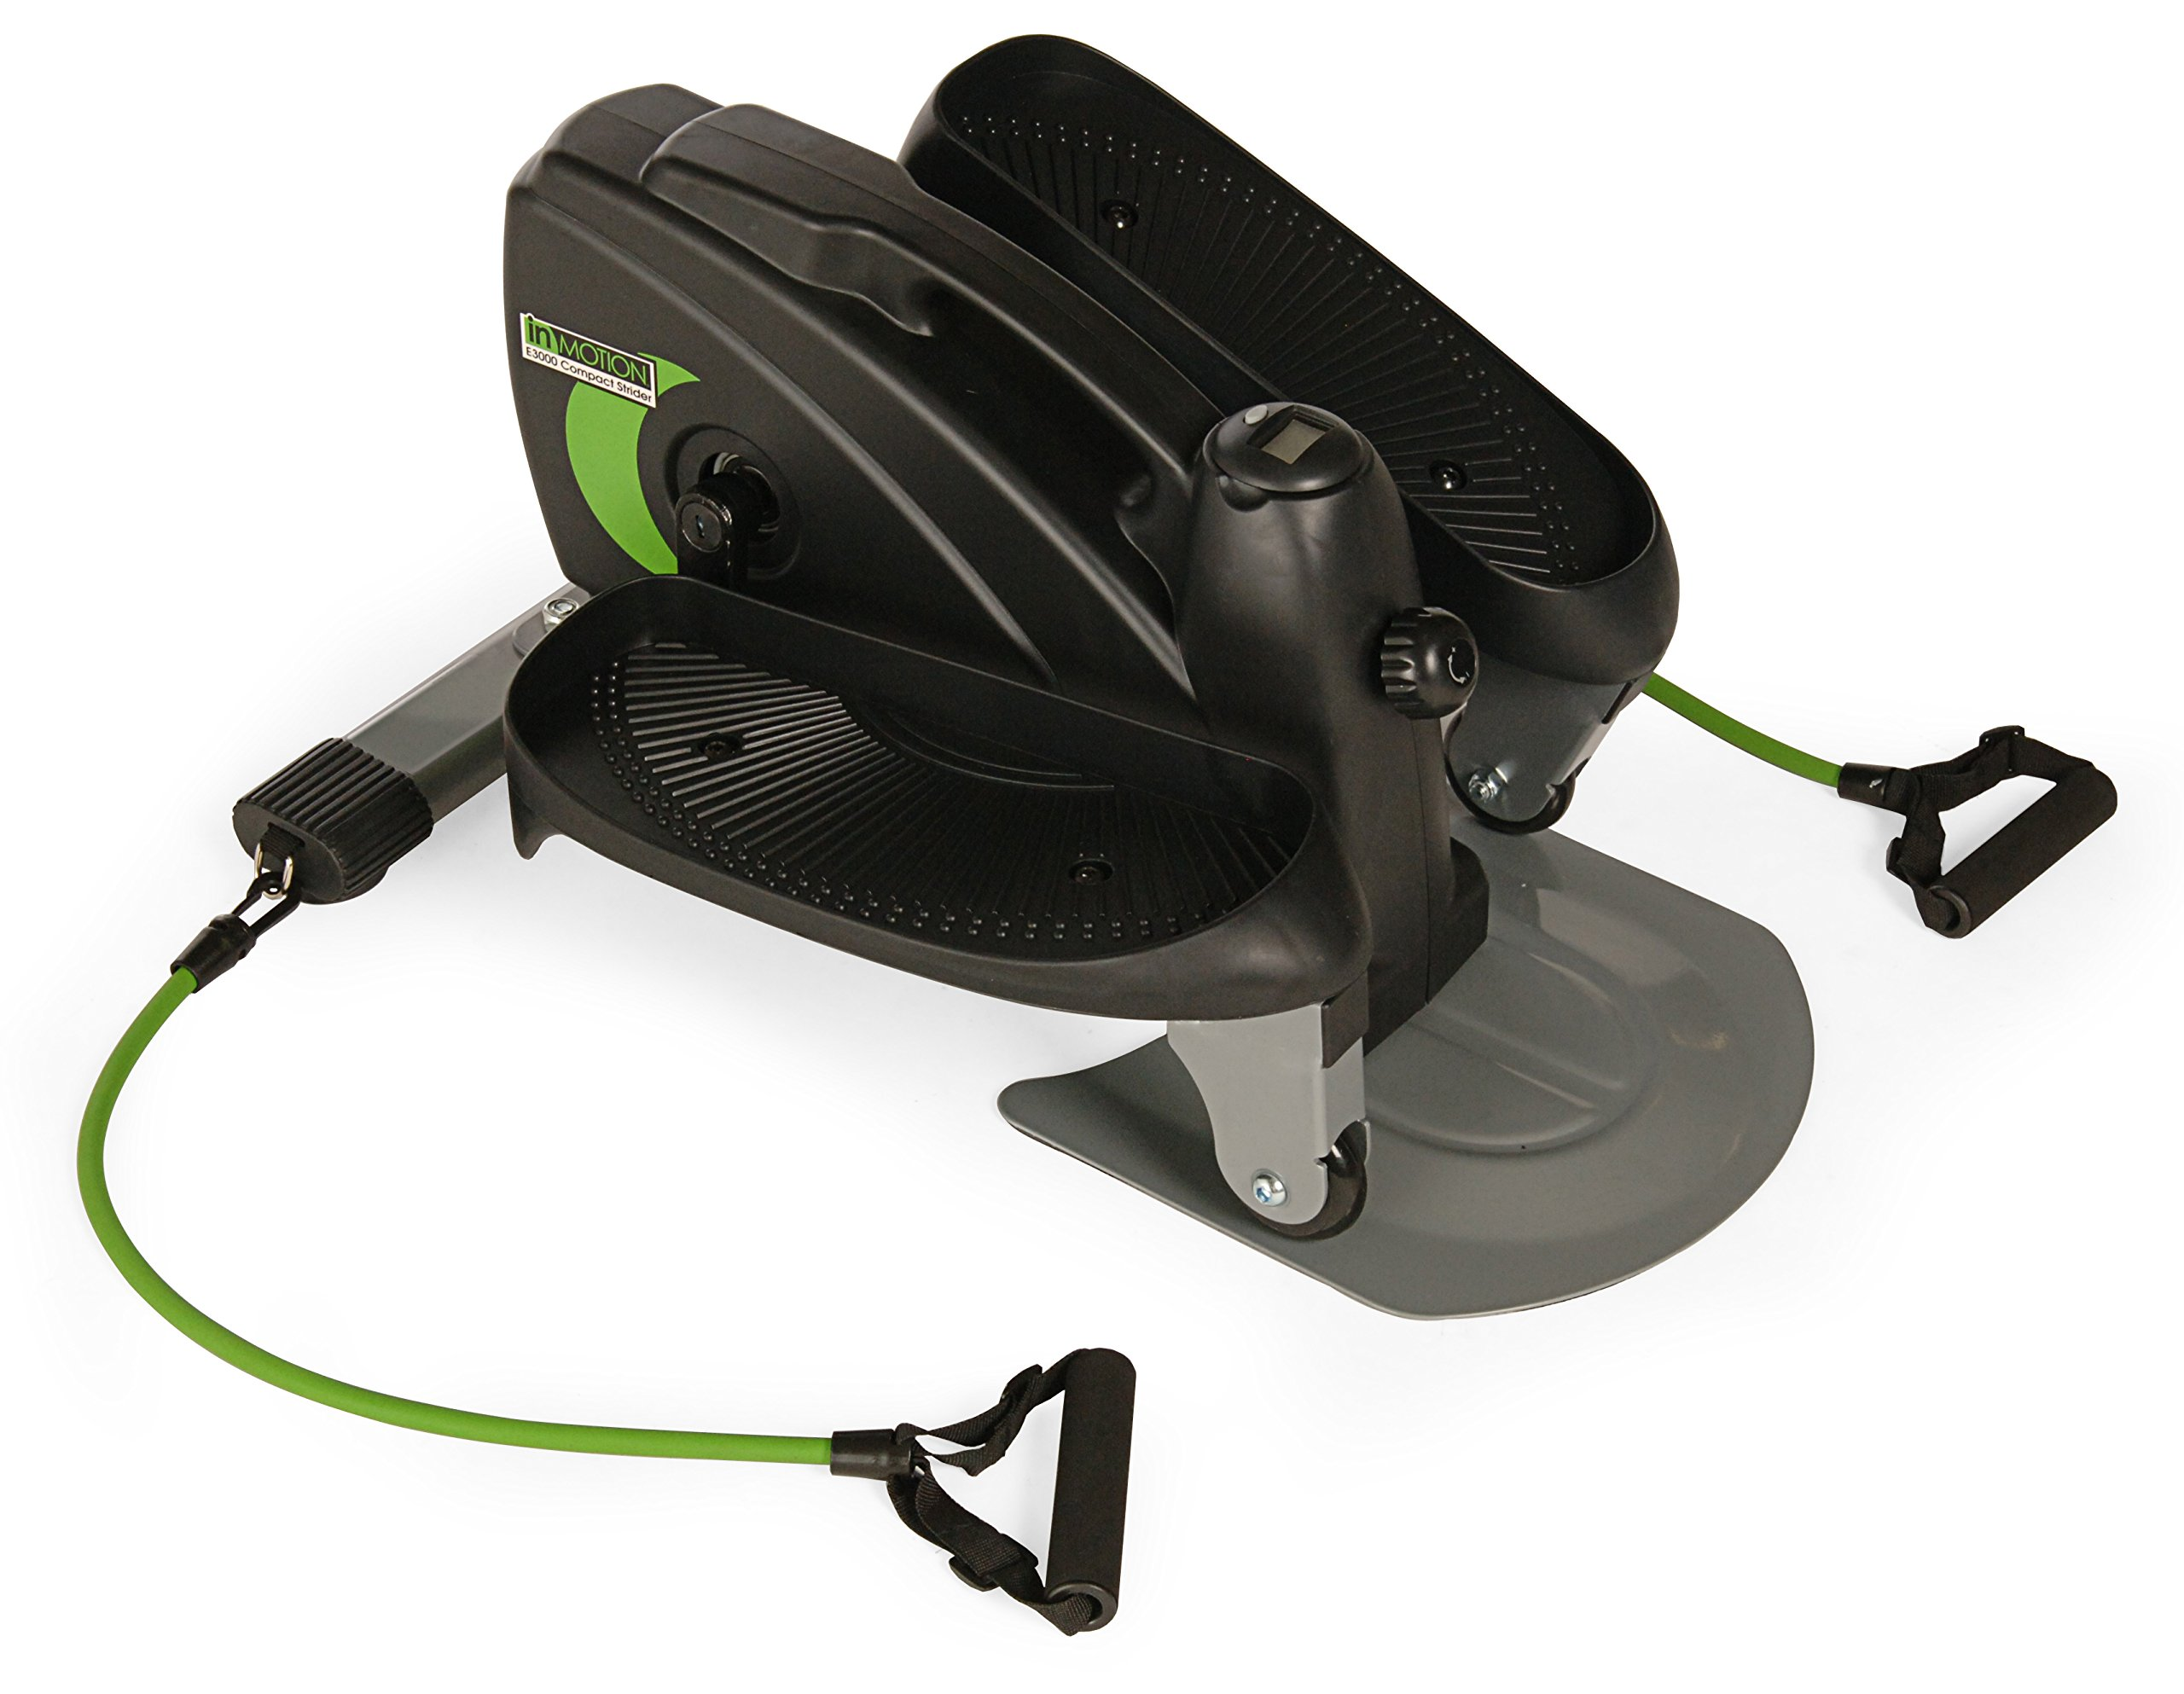 Stamina InMotion Compact Strider with Cords by Stamina